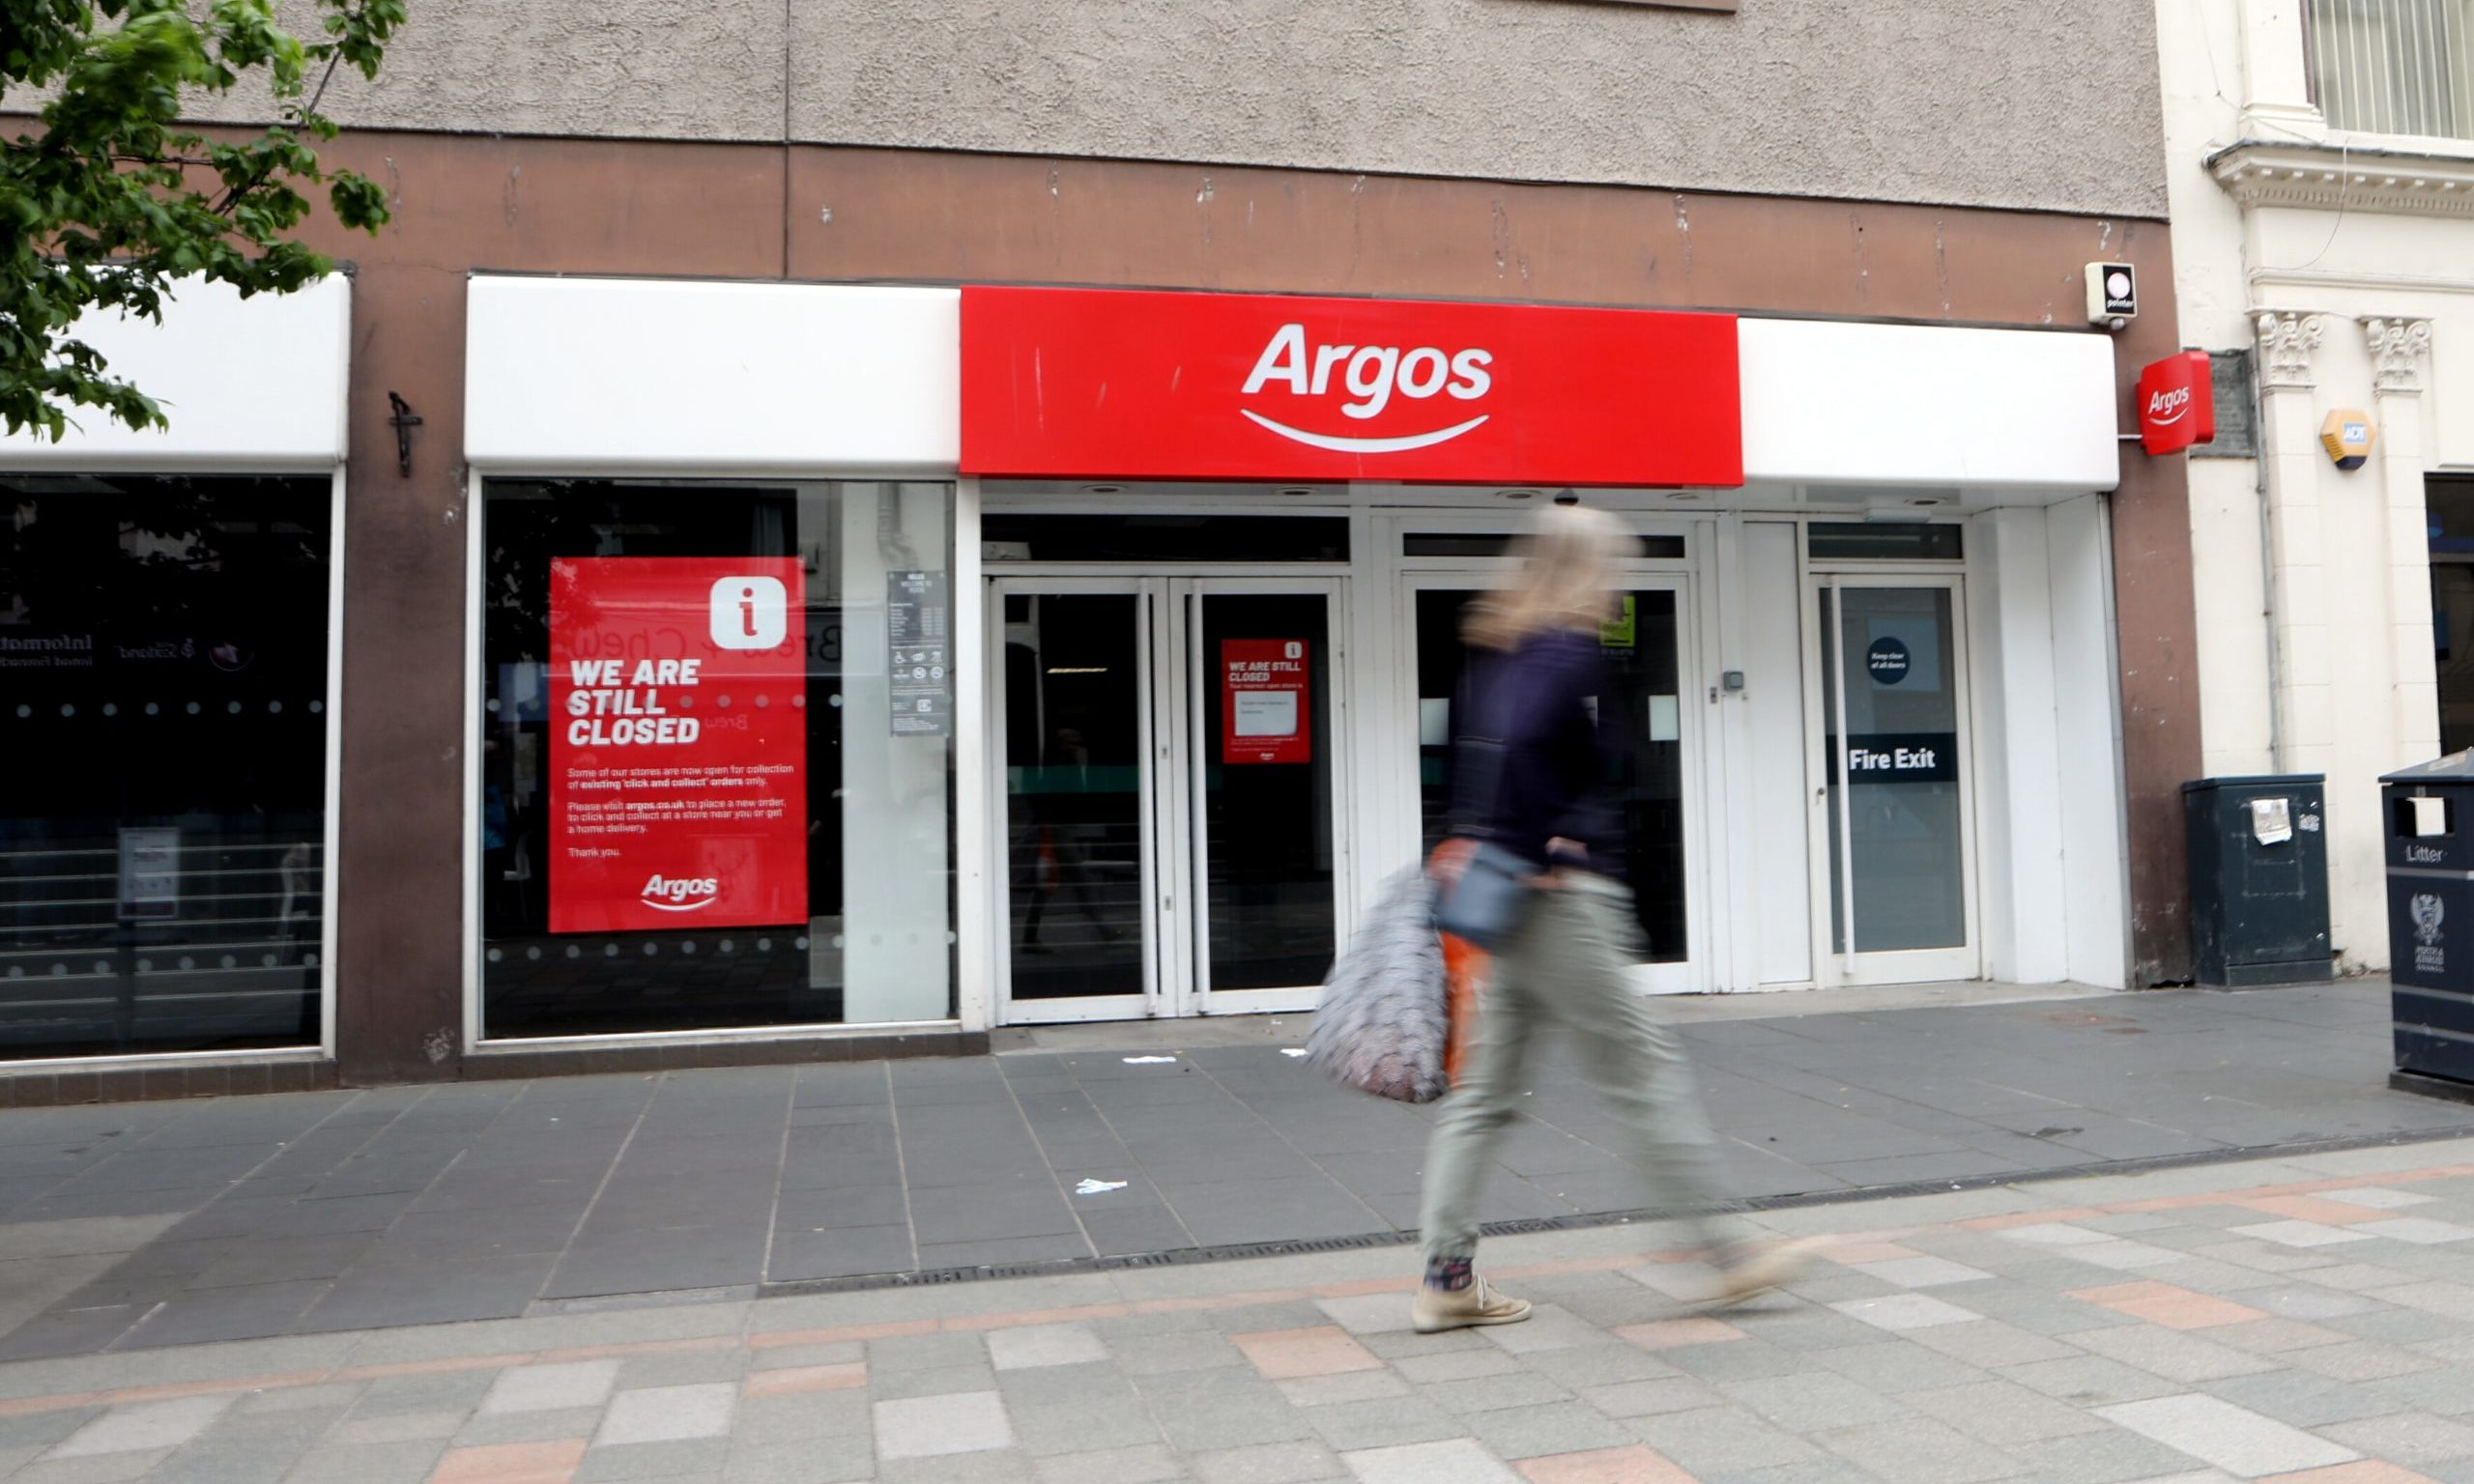 Argos on High Street in Perth